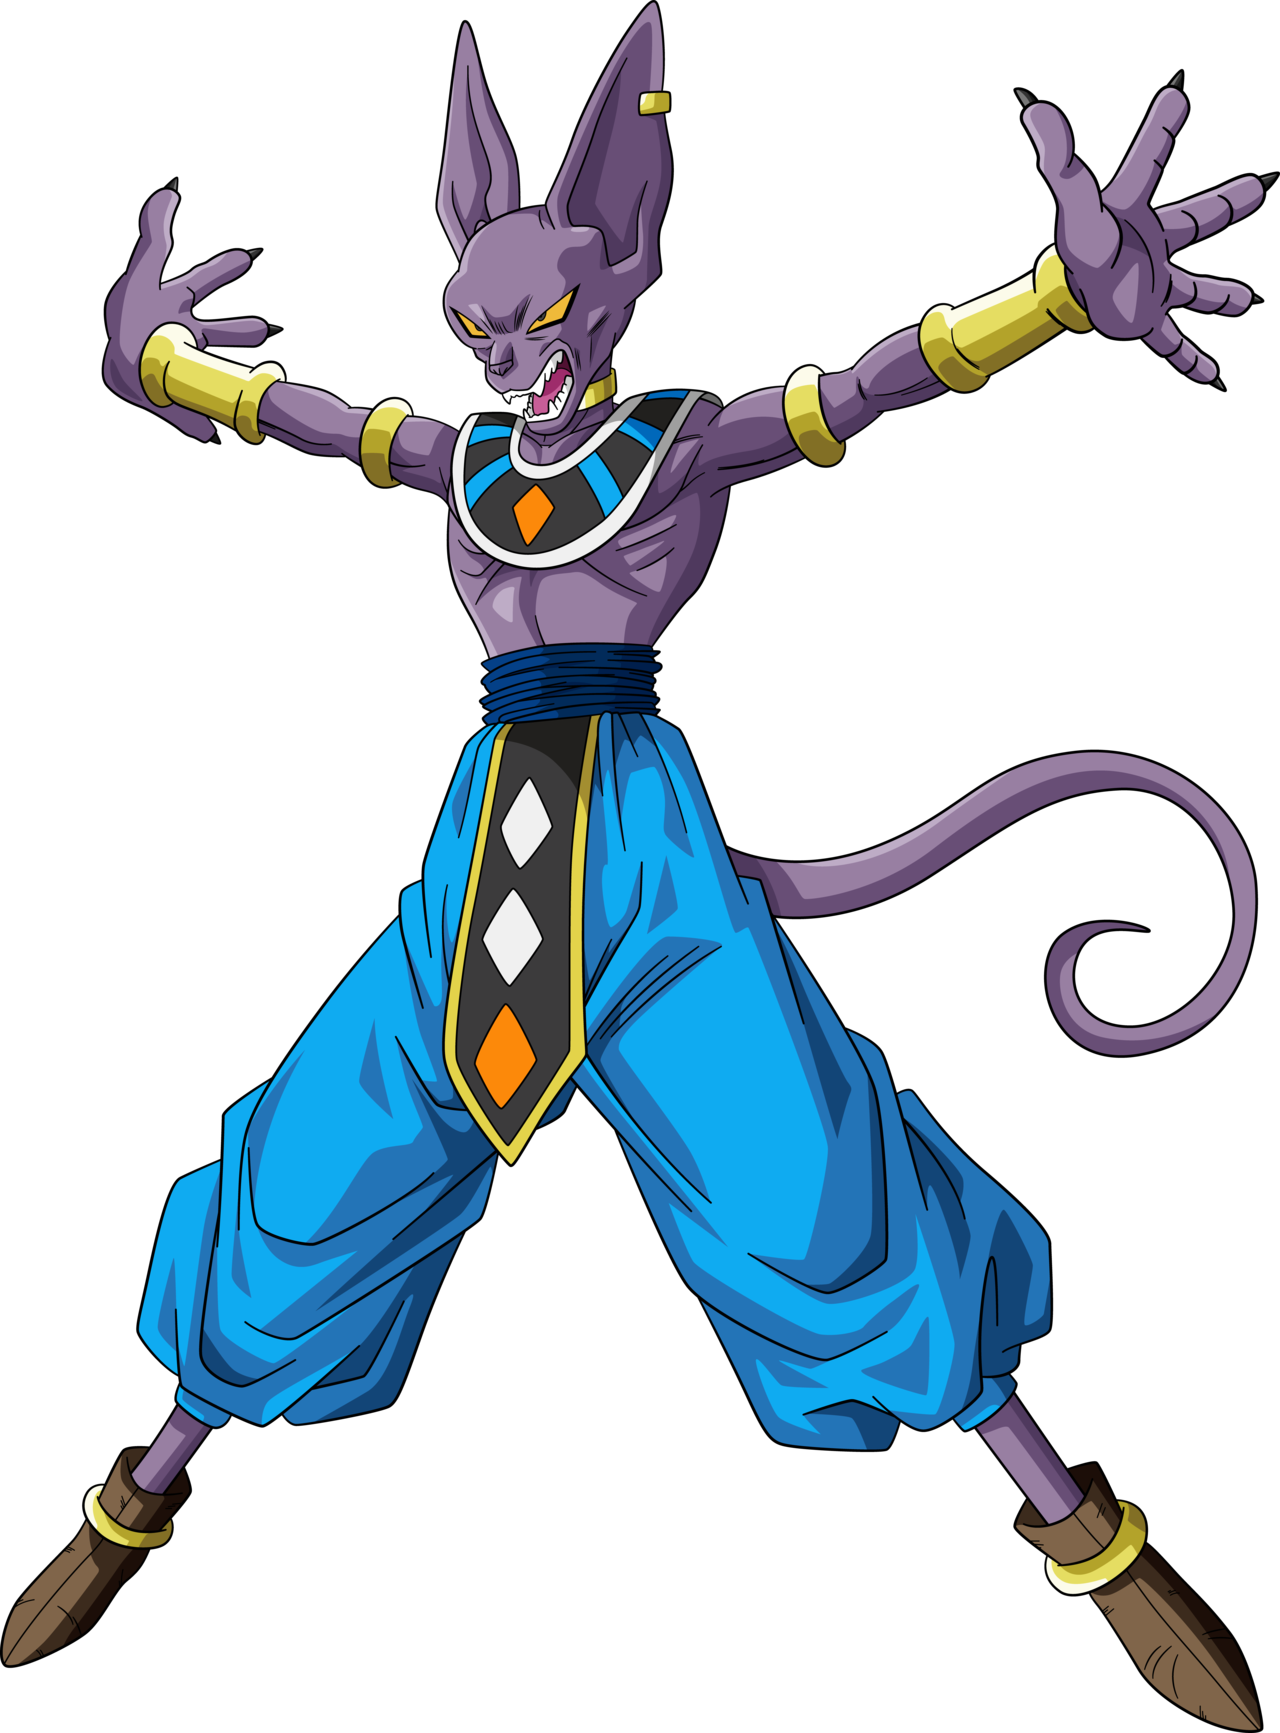 beerus transparent back